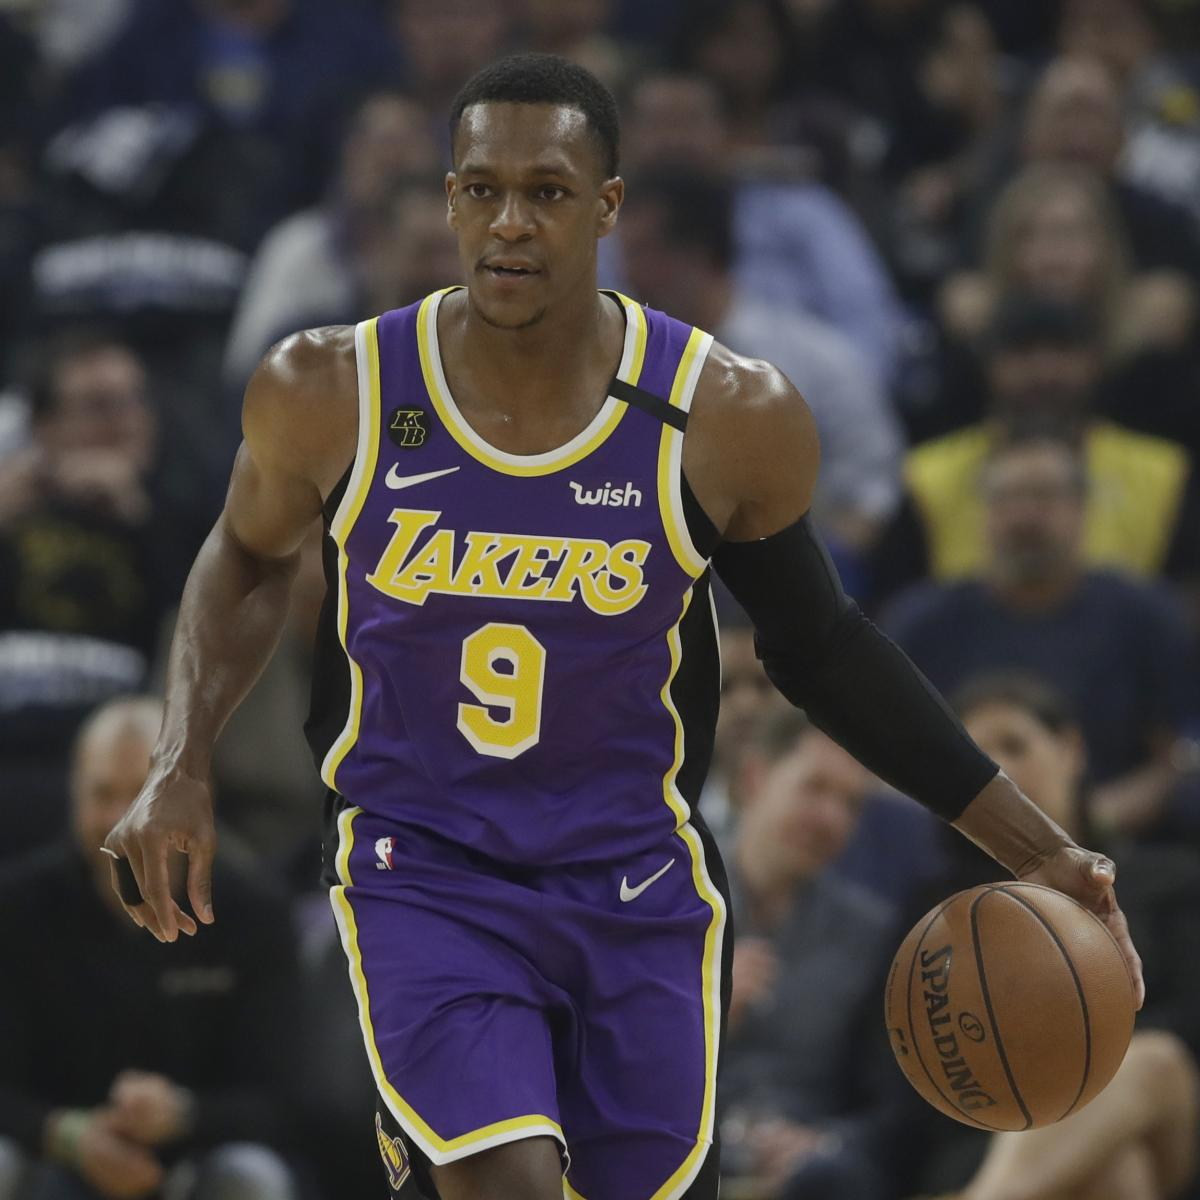 Lakers News: Rajon Rondo to Rejoin Team in NBA Bubble 'Very Soon' After Injury